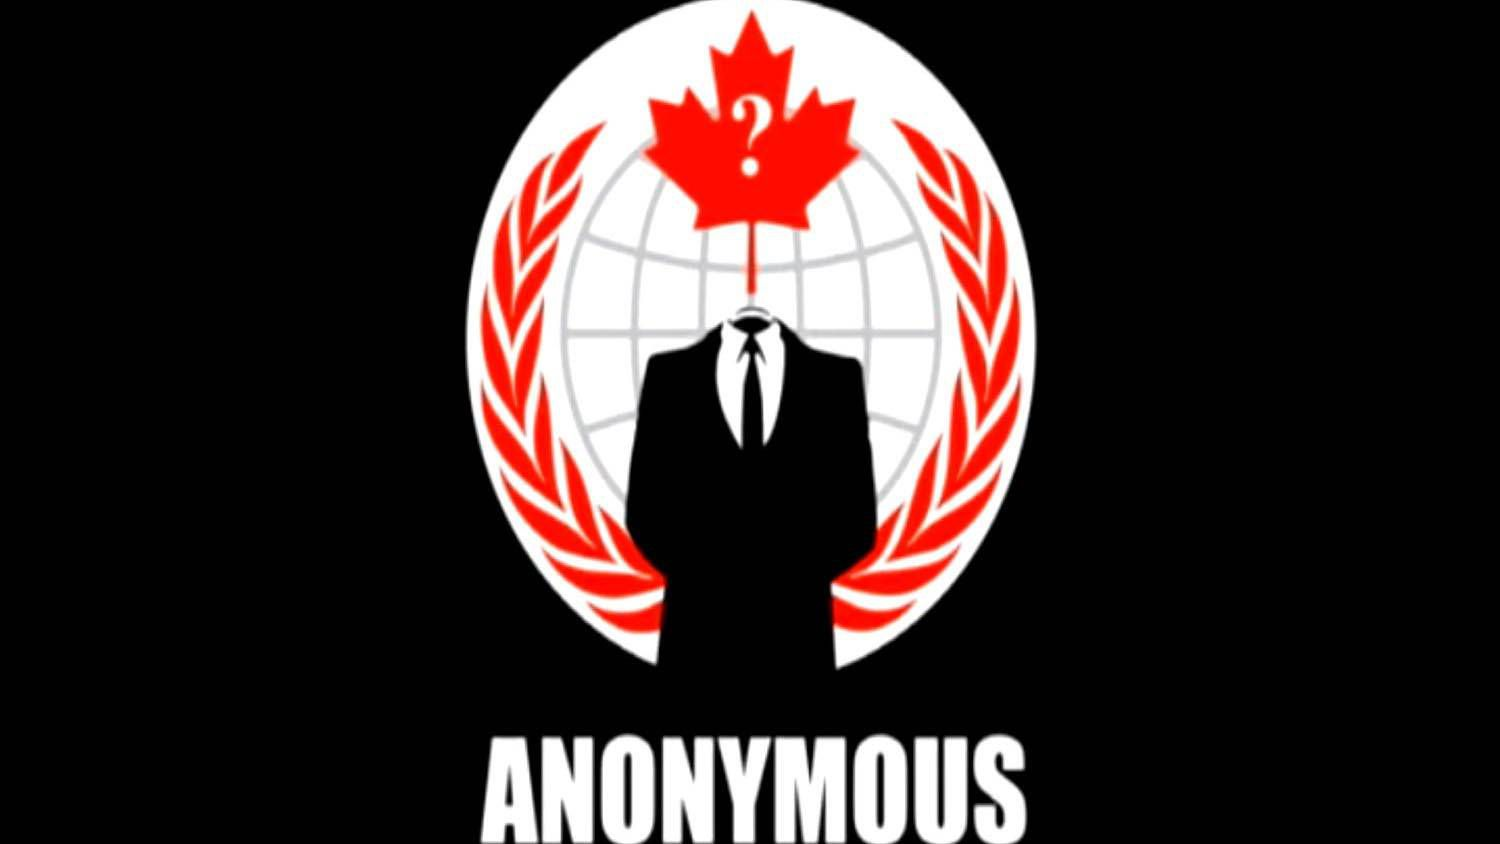 Speaker sides with Toews, rules hacker group Anonymous out